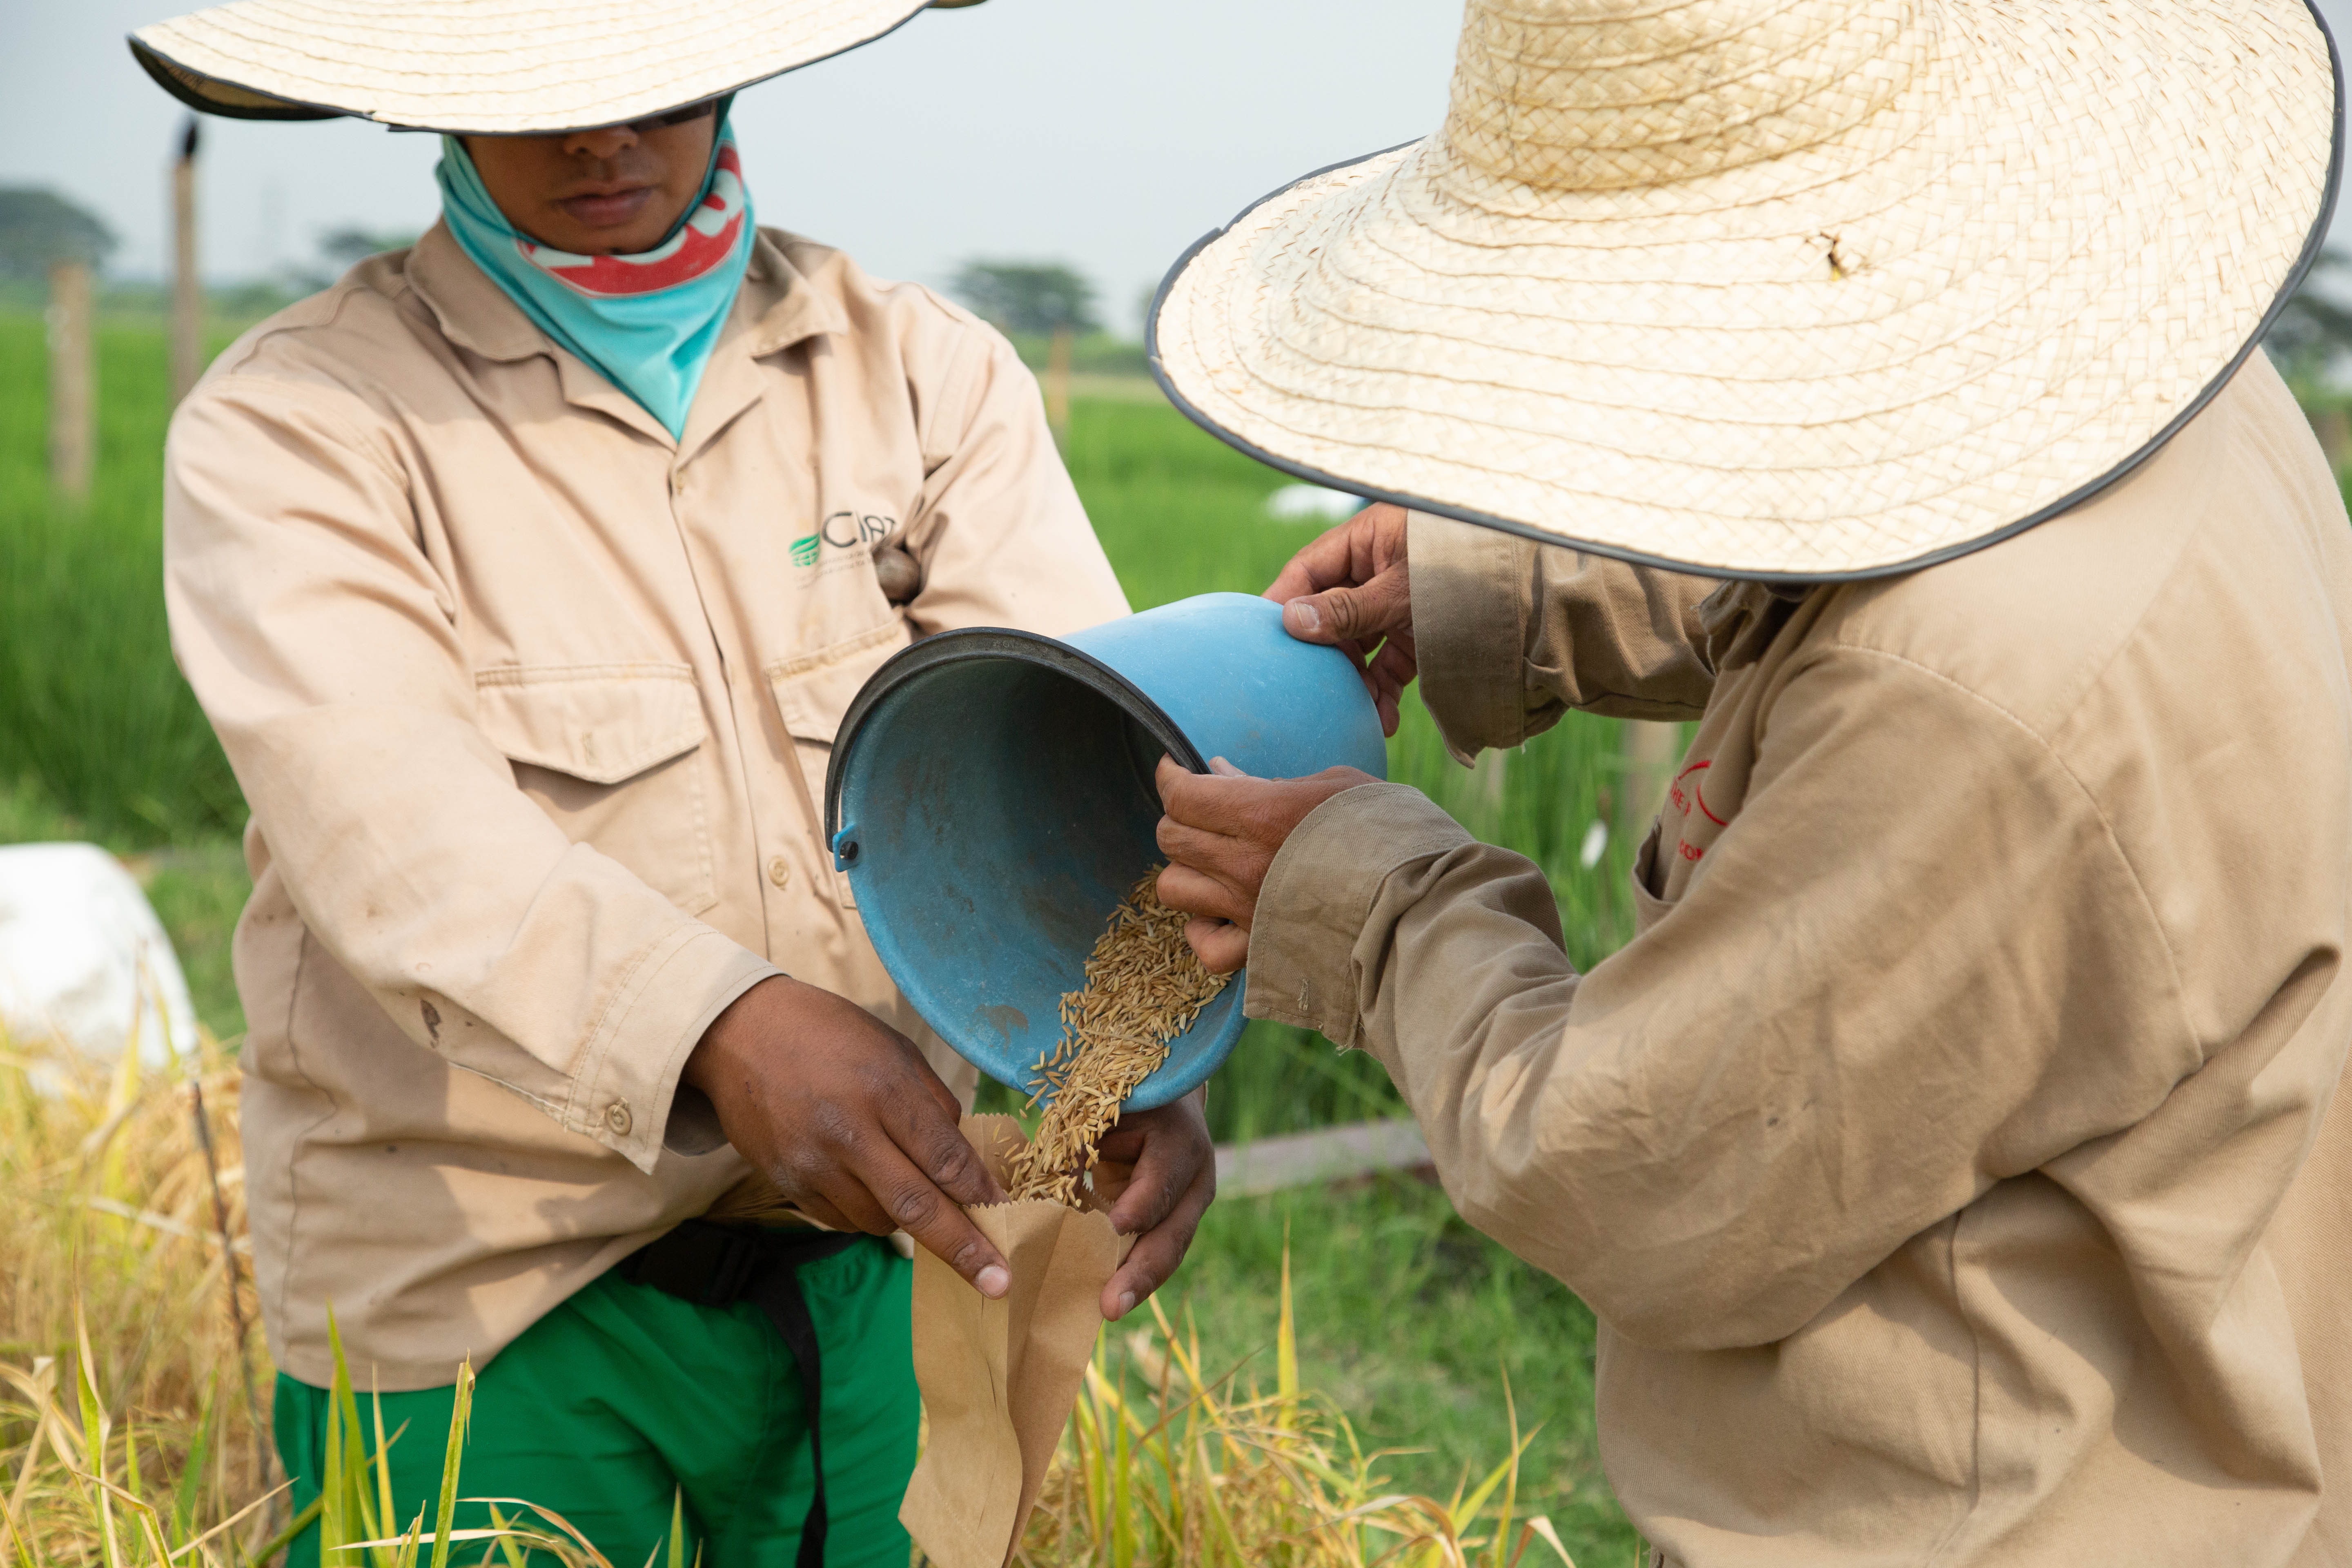 Two field laborers wearing beige uniforms and large, broad-brimmed straw hats pour harvested rice grains from a blue plastic bucket into a specially labeled paper packet for seed collection and storage at CIAT in Cali, Colombia. Photographer Jacquelyn Turner, ACToday/IRI.